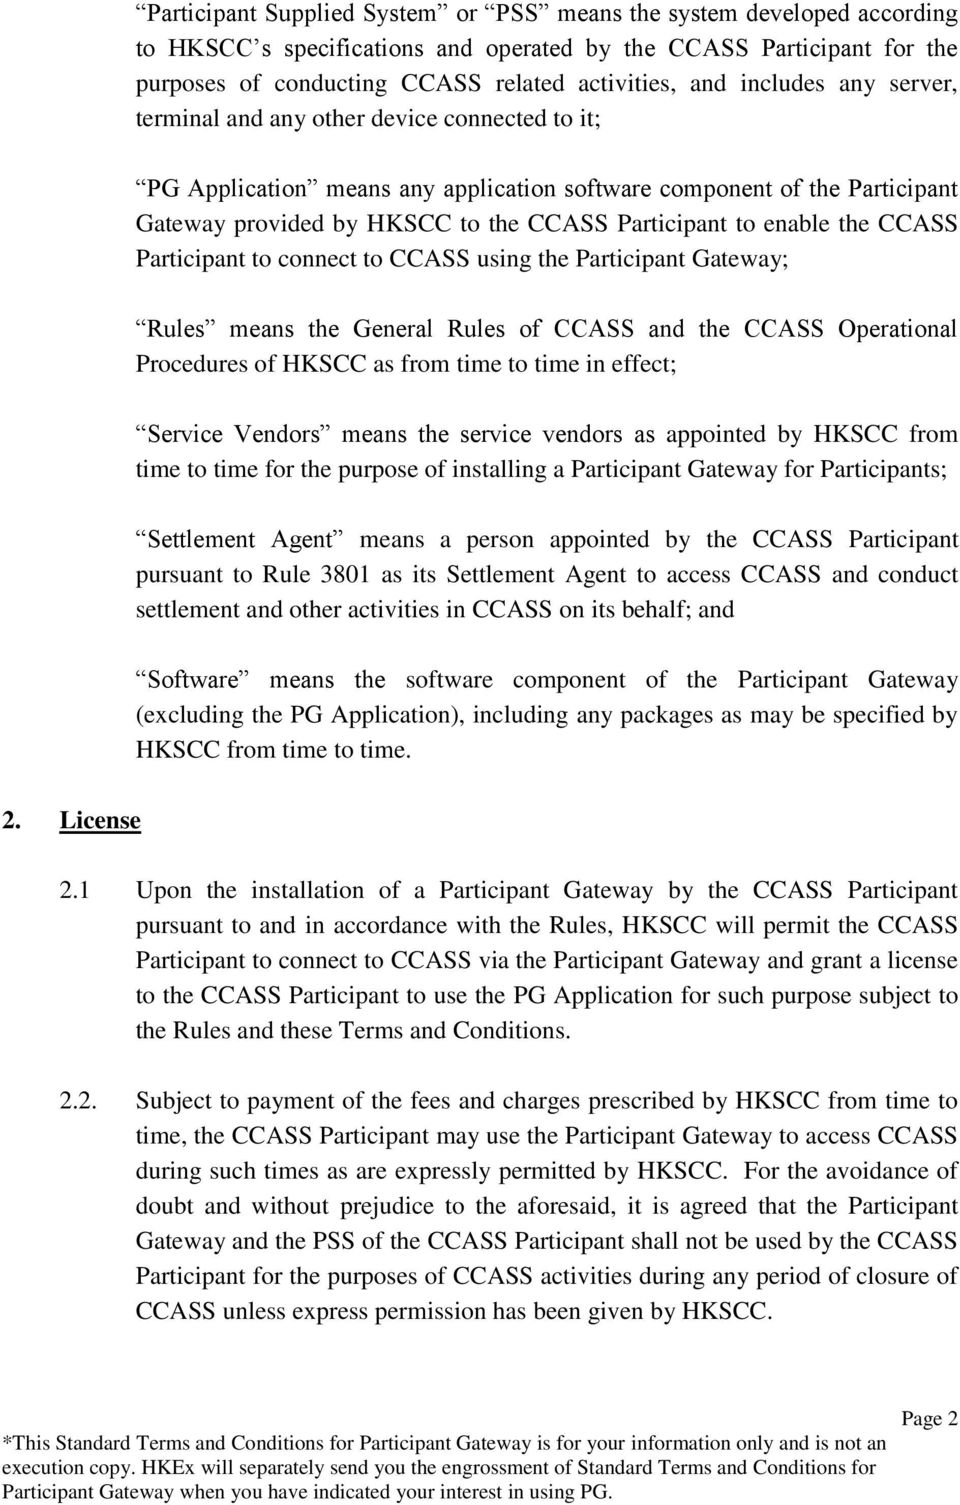 enable the CCASS Participant to connect to CCASS using the Participant Gateway; Rules means the General Rules of CCASS and the CCASS Operational Procedures of HKSCC as from time to time in effect;